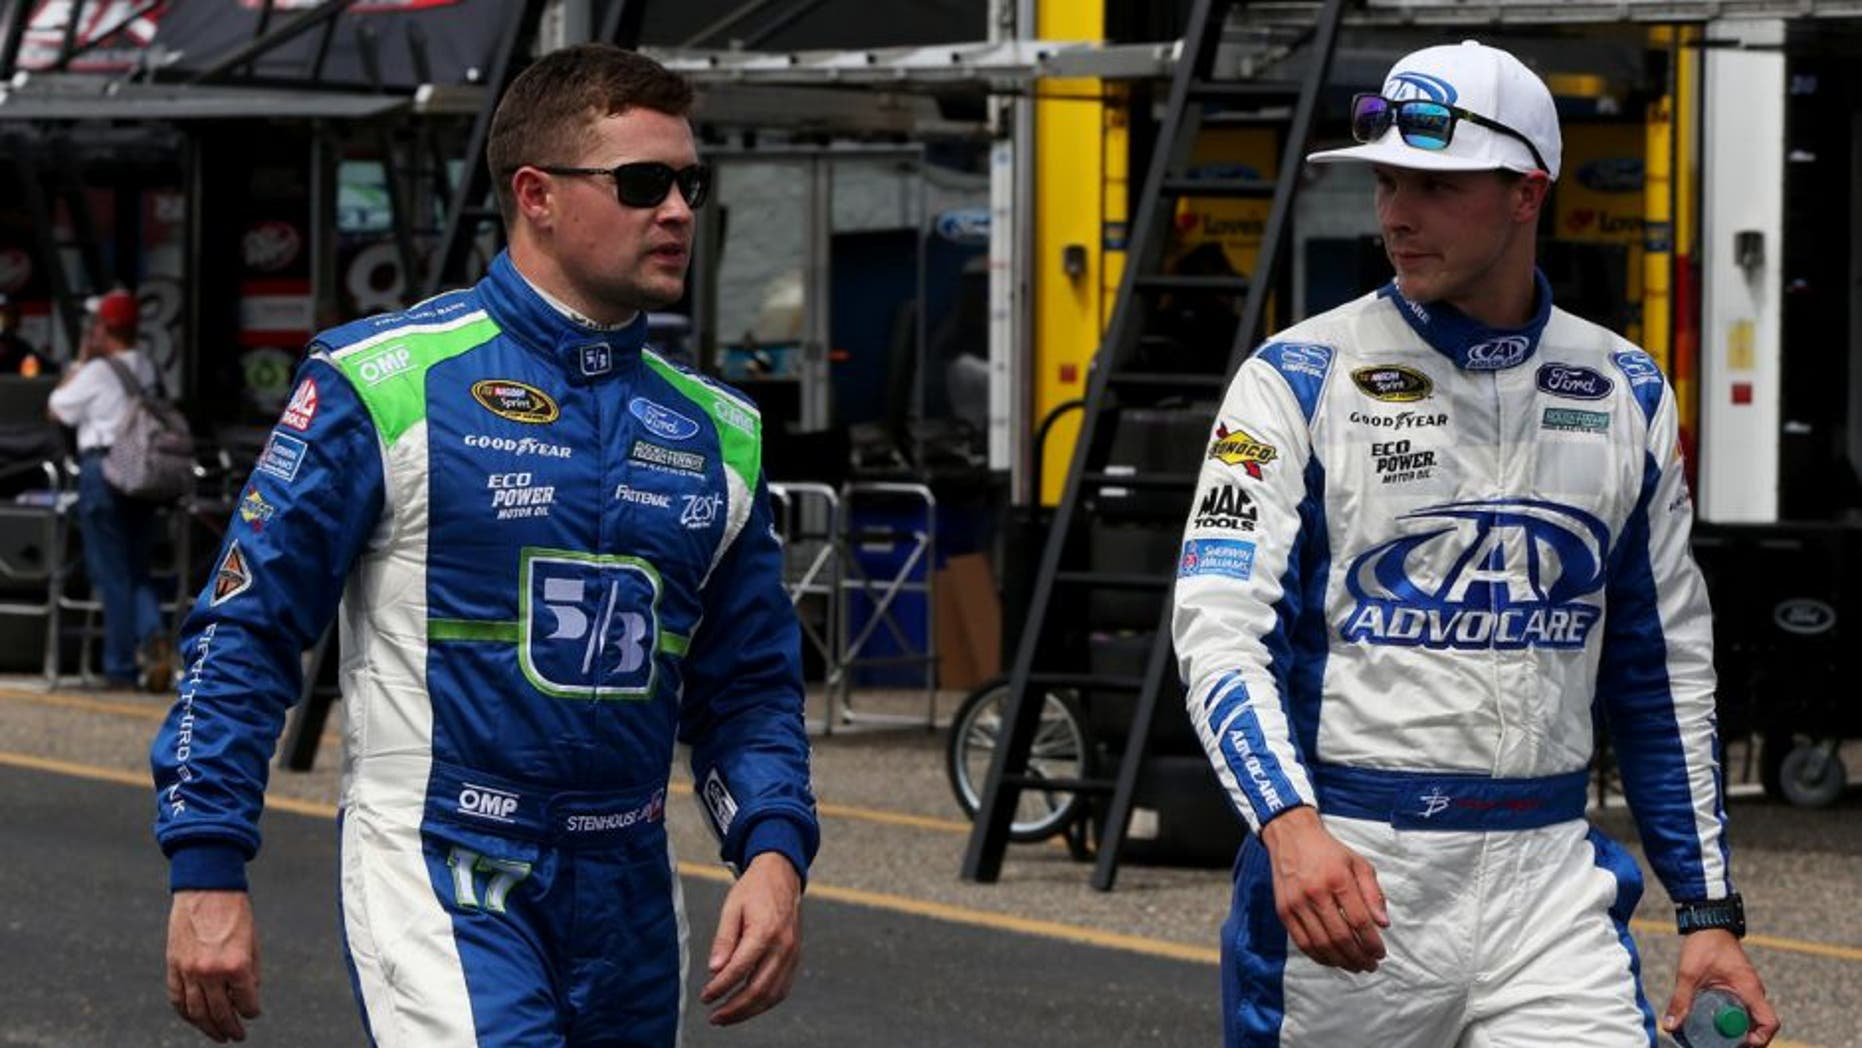 TALLADEGA, AL - APRIL 29: Ricky Stenhouse Jr, driver of the #17 Fifth Third Bank Ford, walks with Trevor Bayne, driver of the #6 AdvoCare Ford, in the garage area during practice for the NASCAR Sprint Cup Series GEICO 500 at Talladega Superspeedway on April 29, 2016 in Talladega, Alabama. (Photo by Matt Sullivan/NASCAR via Getty Images)